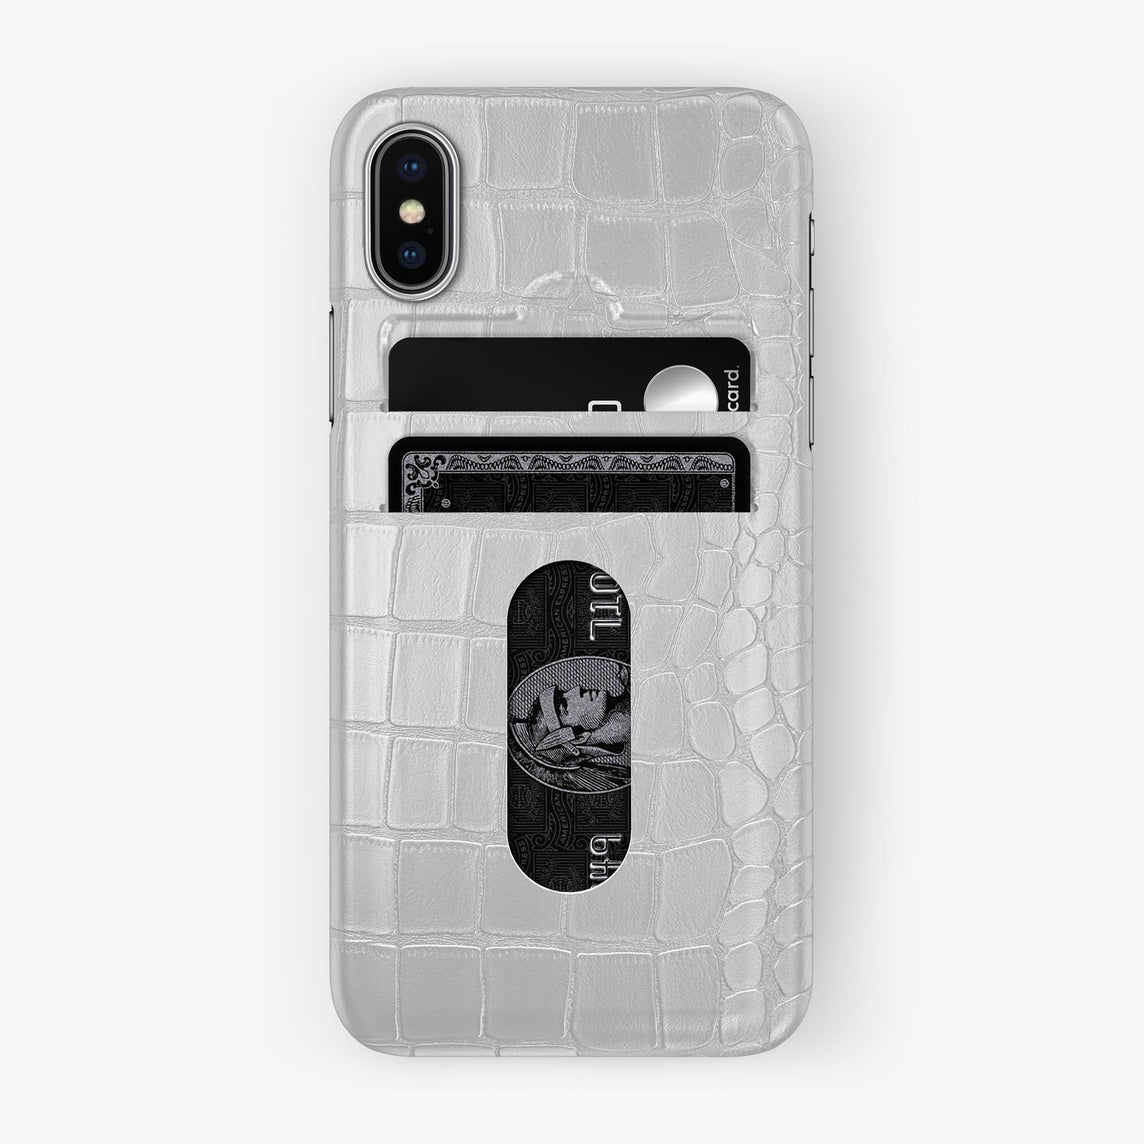 Alligator Card Holder Case iPhone X/Xs | White - Stainless Steel - Hadoro